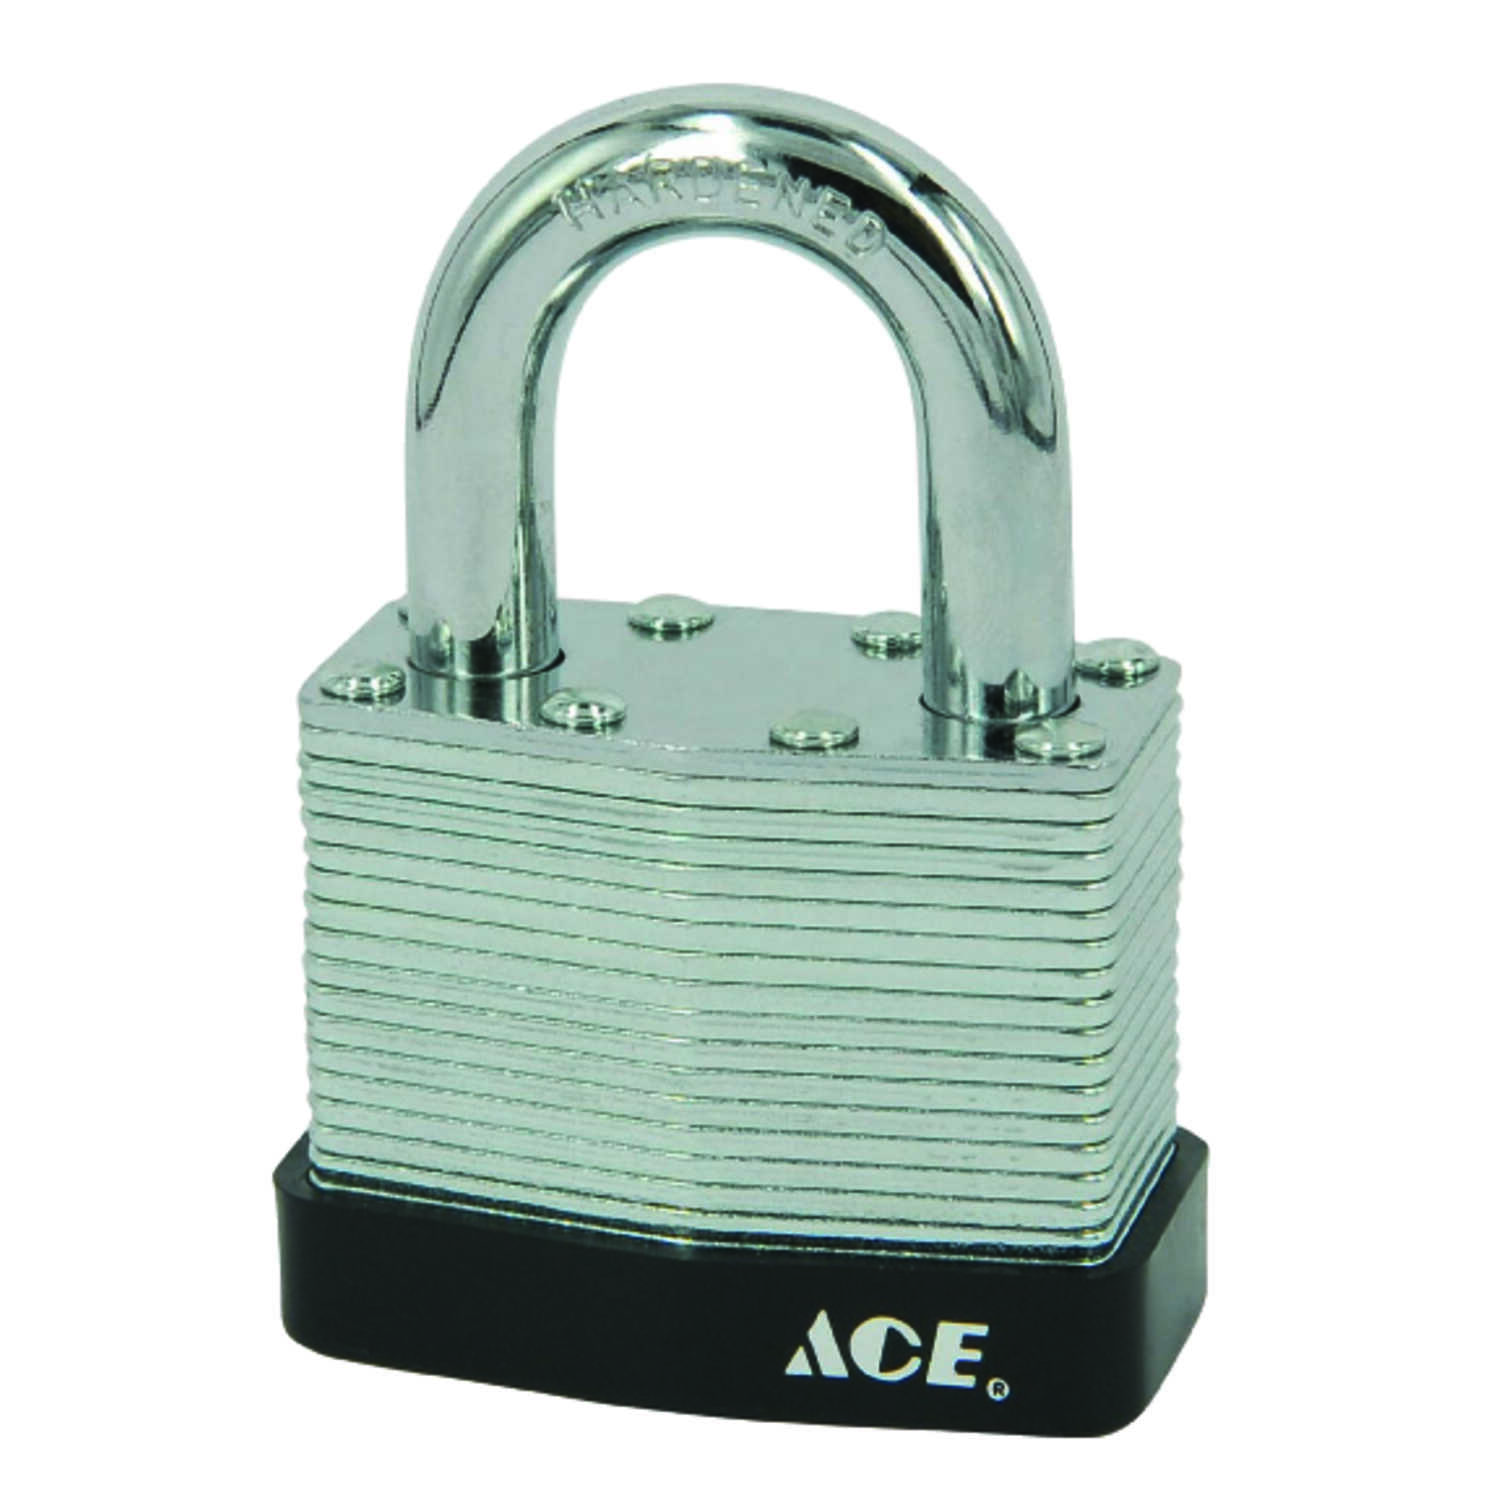 Ace  1-1/16 in. H x 1-3/16 in. W x 11/16 in. L Steel  Pin Tumbler  Padlock  1 pk Keyed Alike